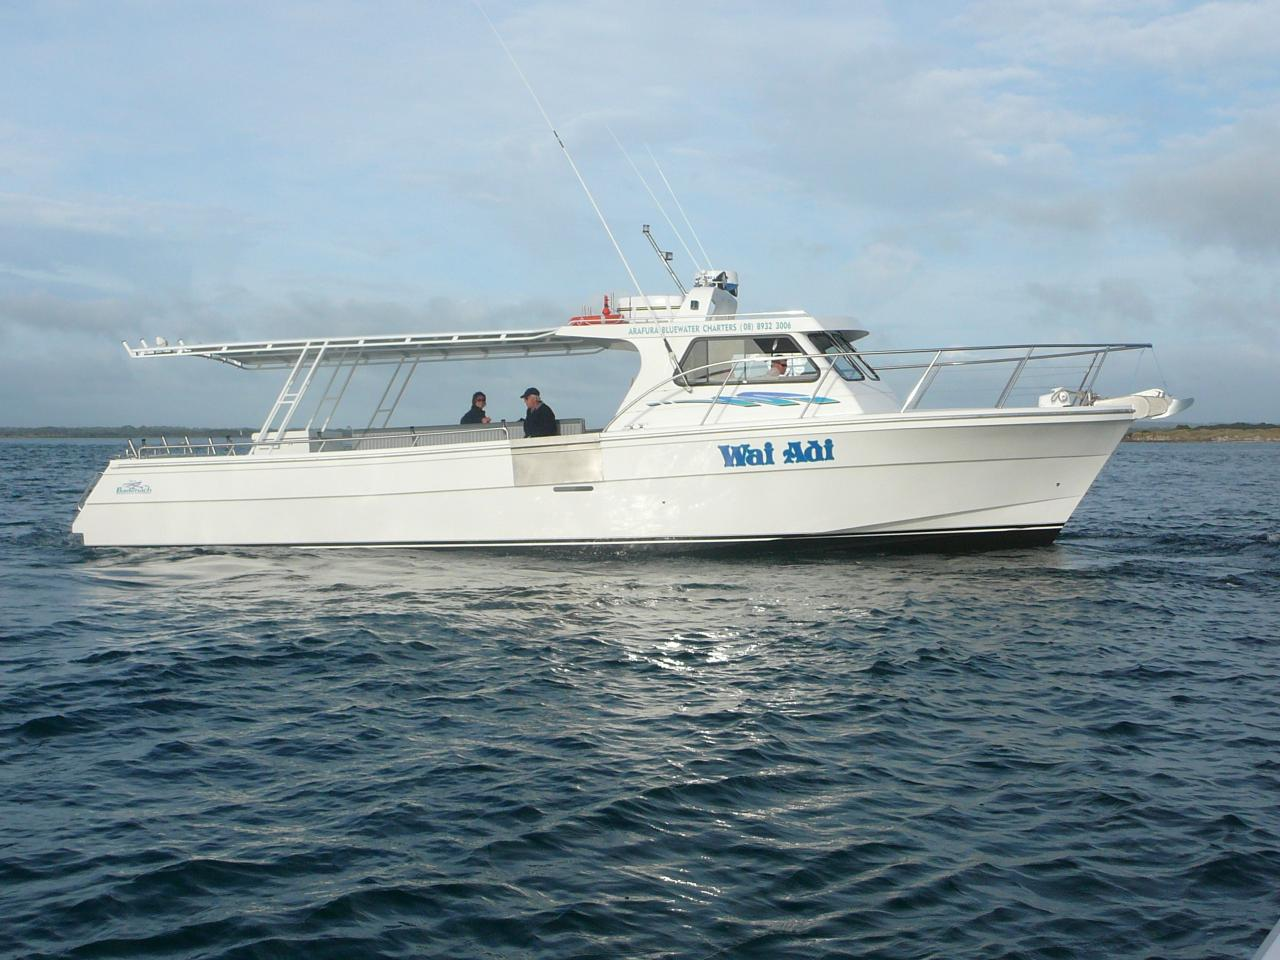 Wai Adi SOLE BOAT  Full Day Offshore Reef and Game Fishing Charter